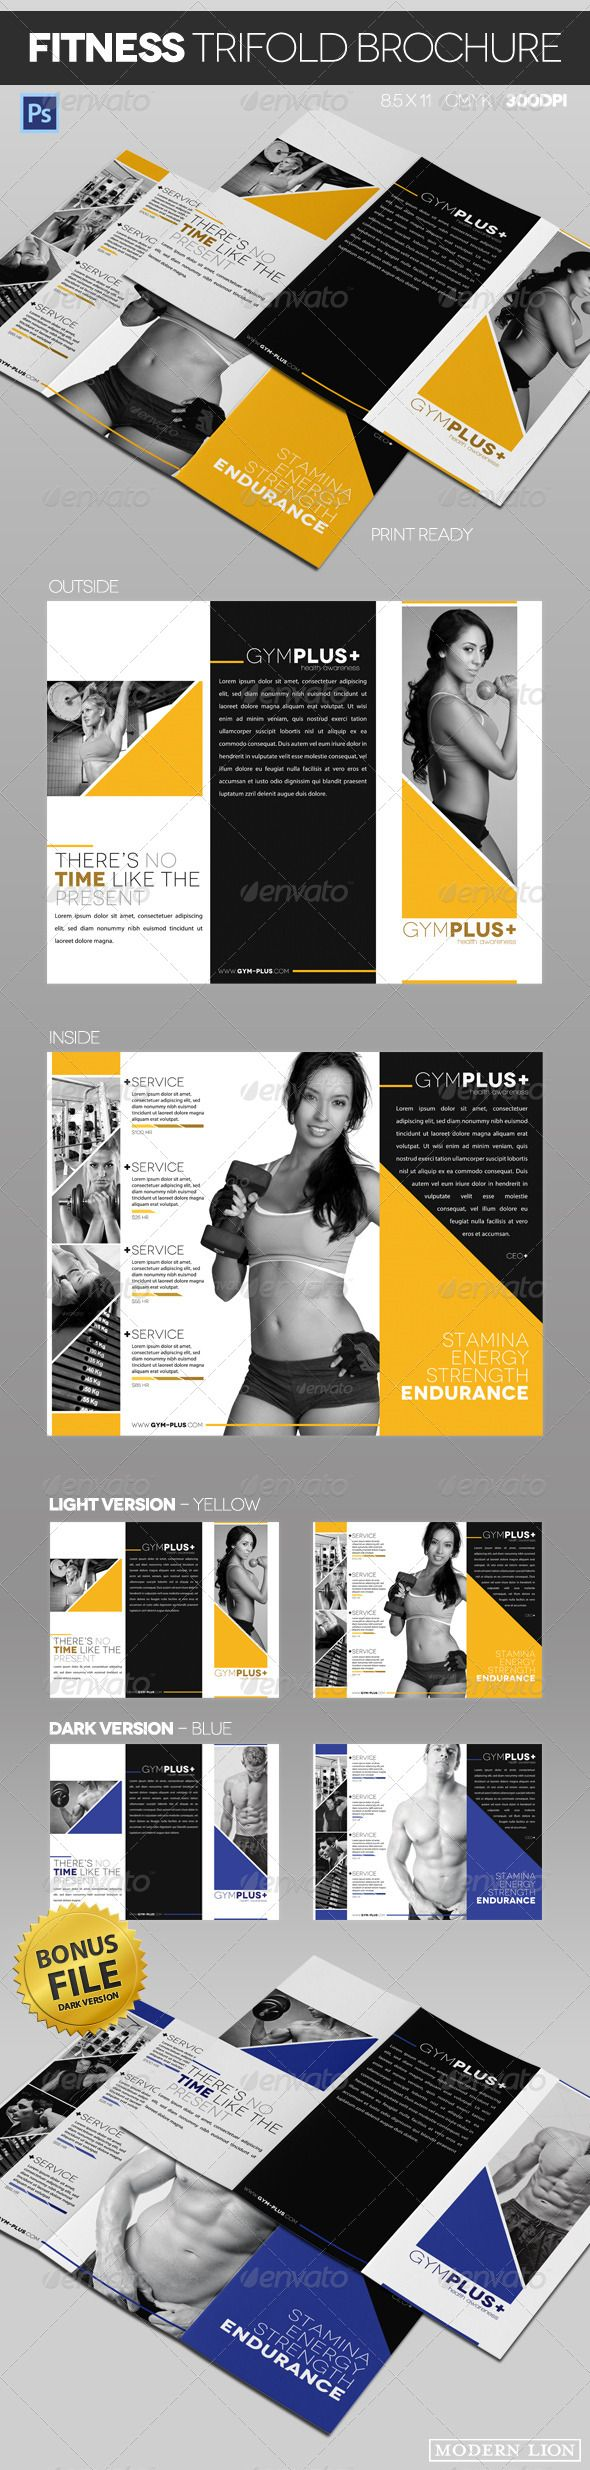 Fitness Gym Trifold Brochure – Gym Brochure